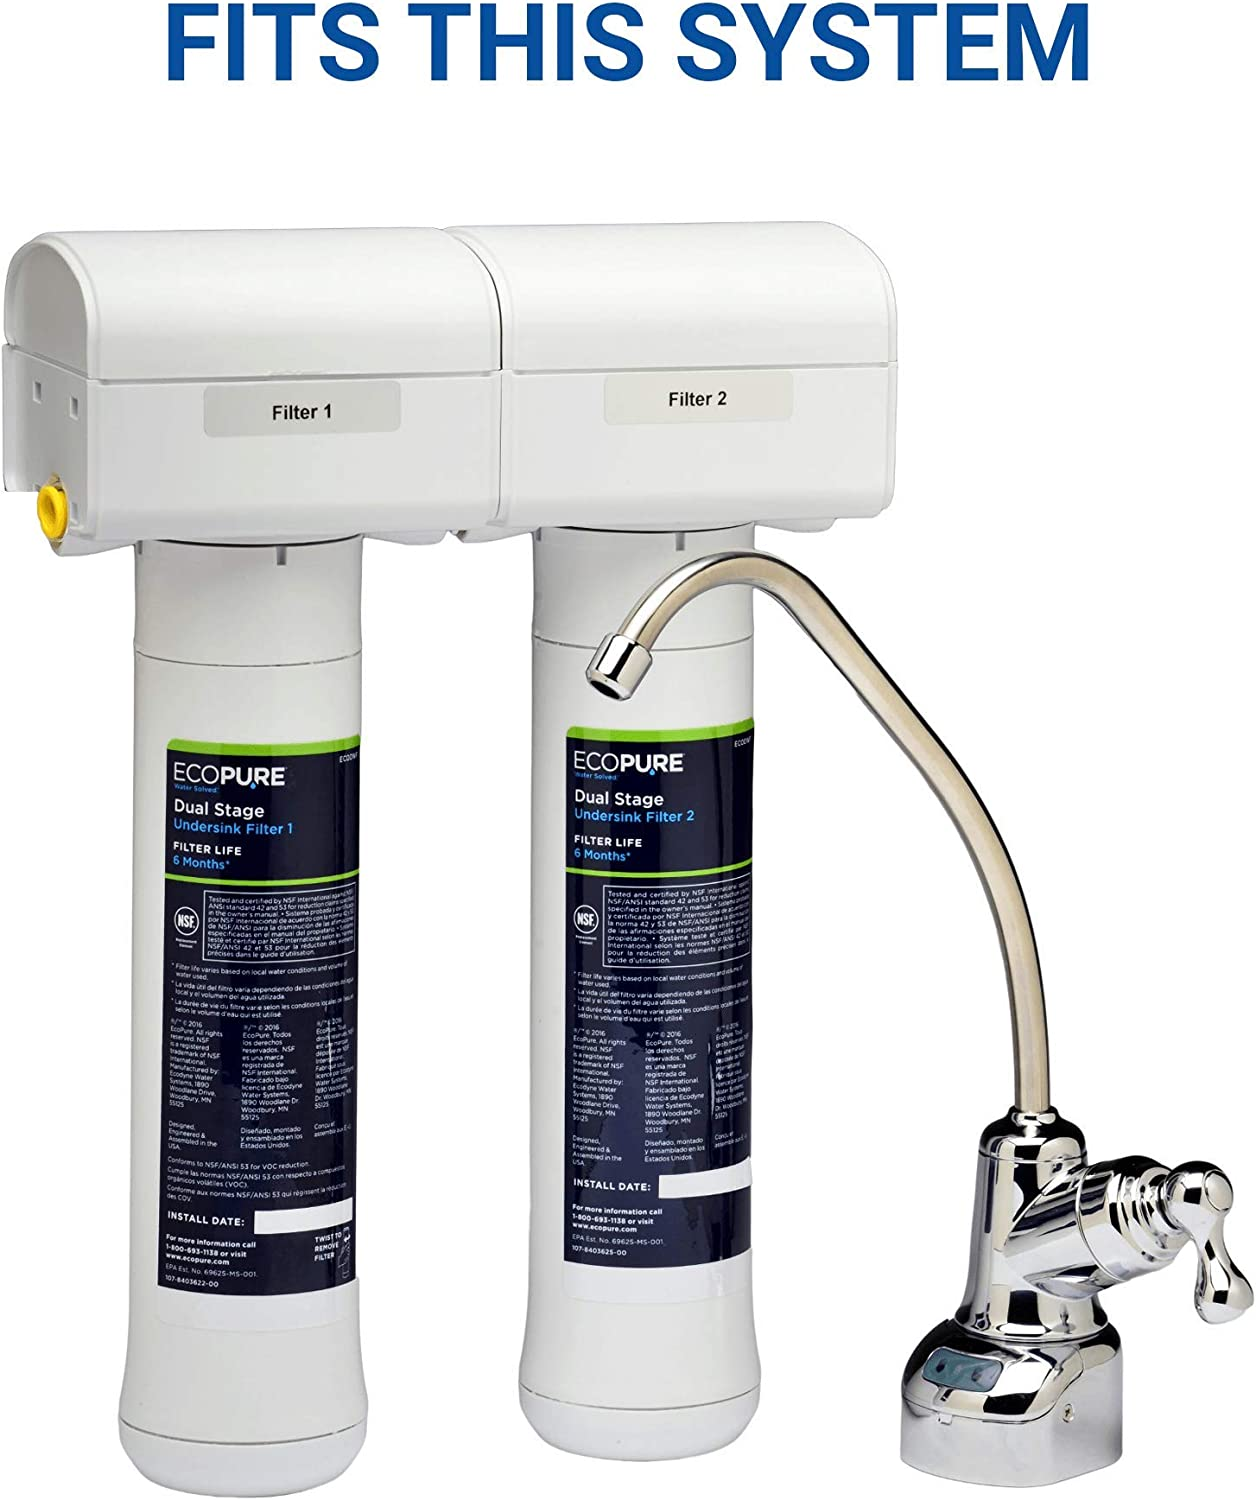 ECODWF Fits ECOP20 System | NSF Certified 6-Month Filter Life EcoPure Dual Stage Under Sink Replacement Water Set